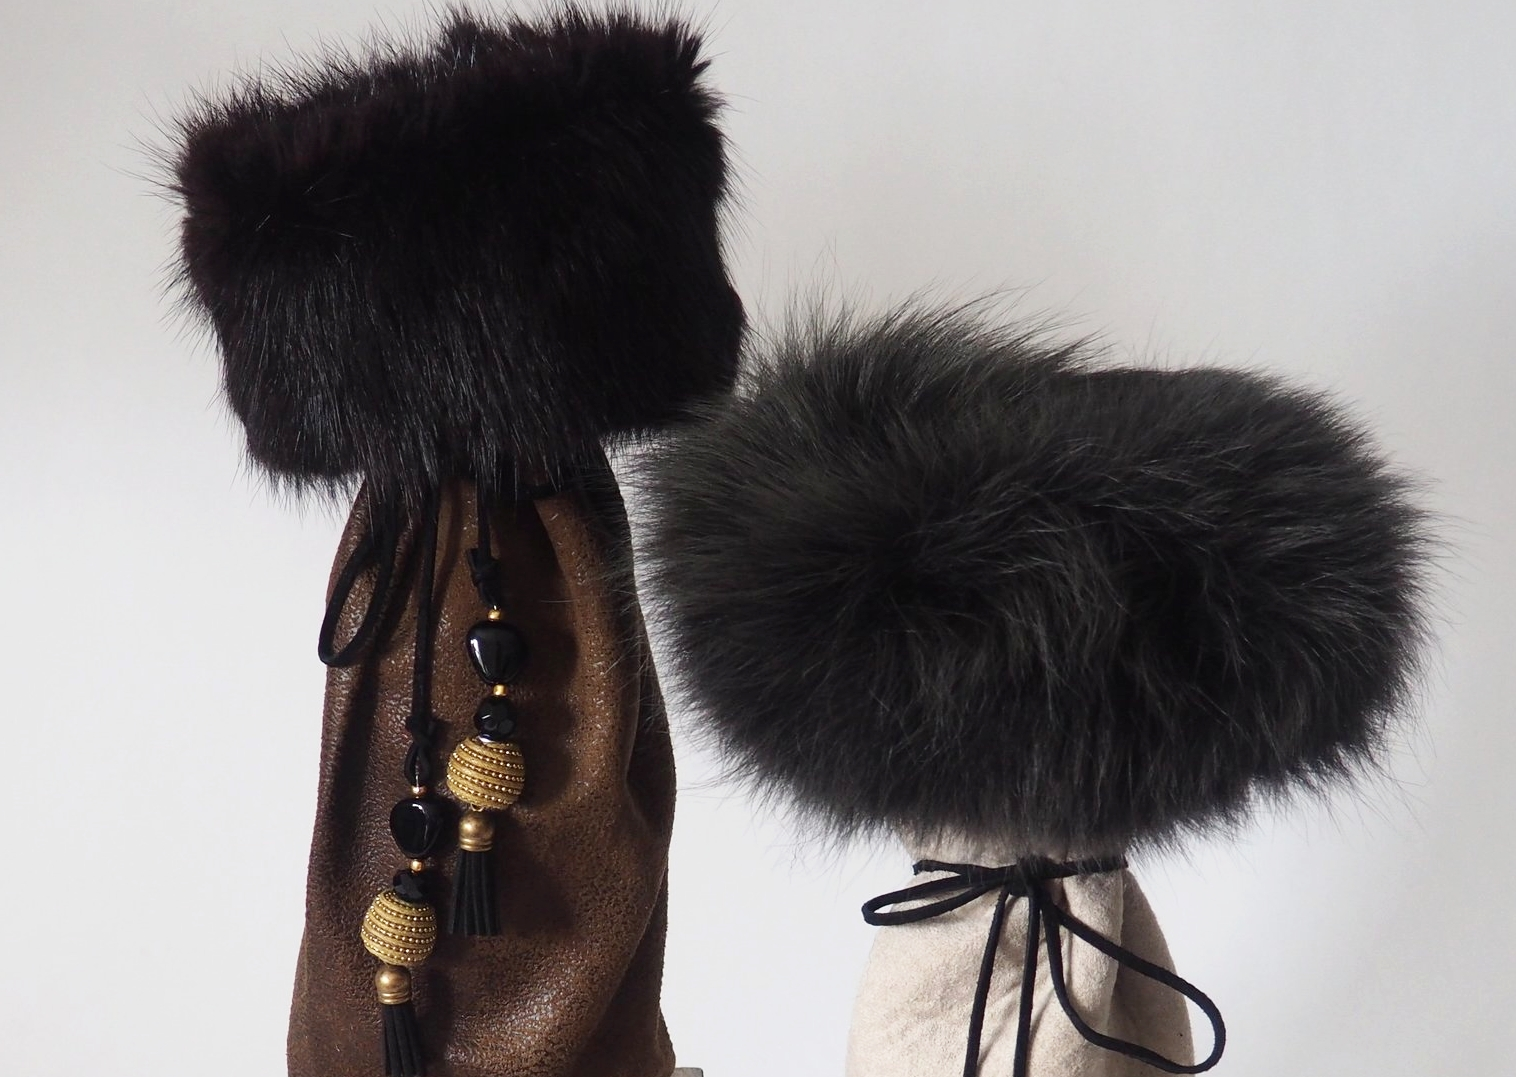 We pride ourselves on our creative details. - From coordinating ribbons, to unique beads and fine furs, every part of our product is chosen with care.